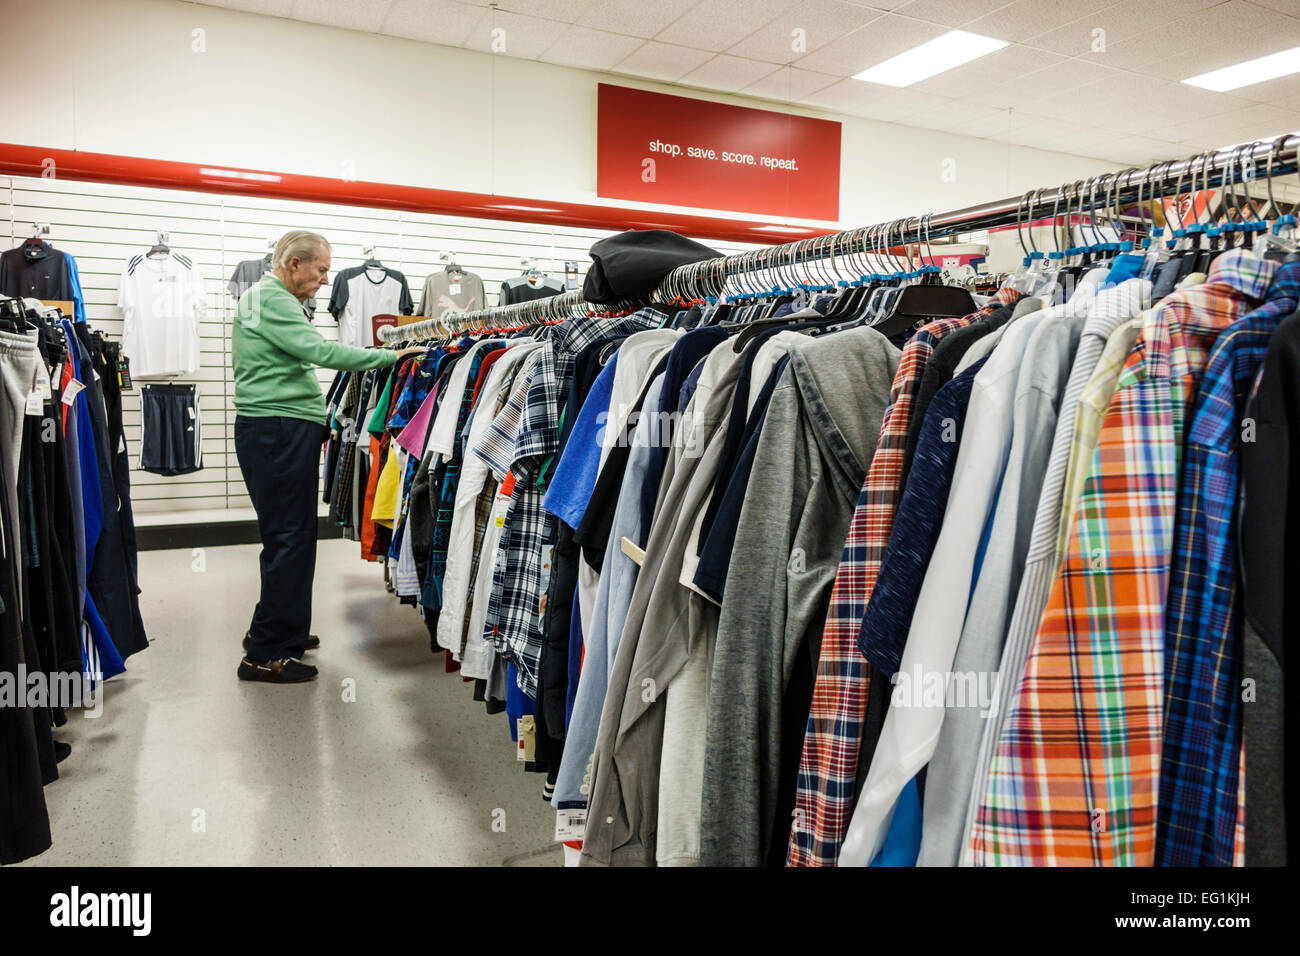 Clothes stores Tj maxx clothing store